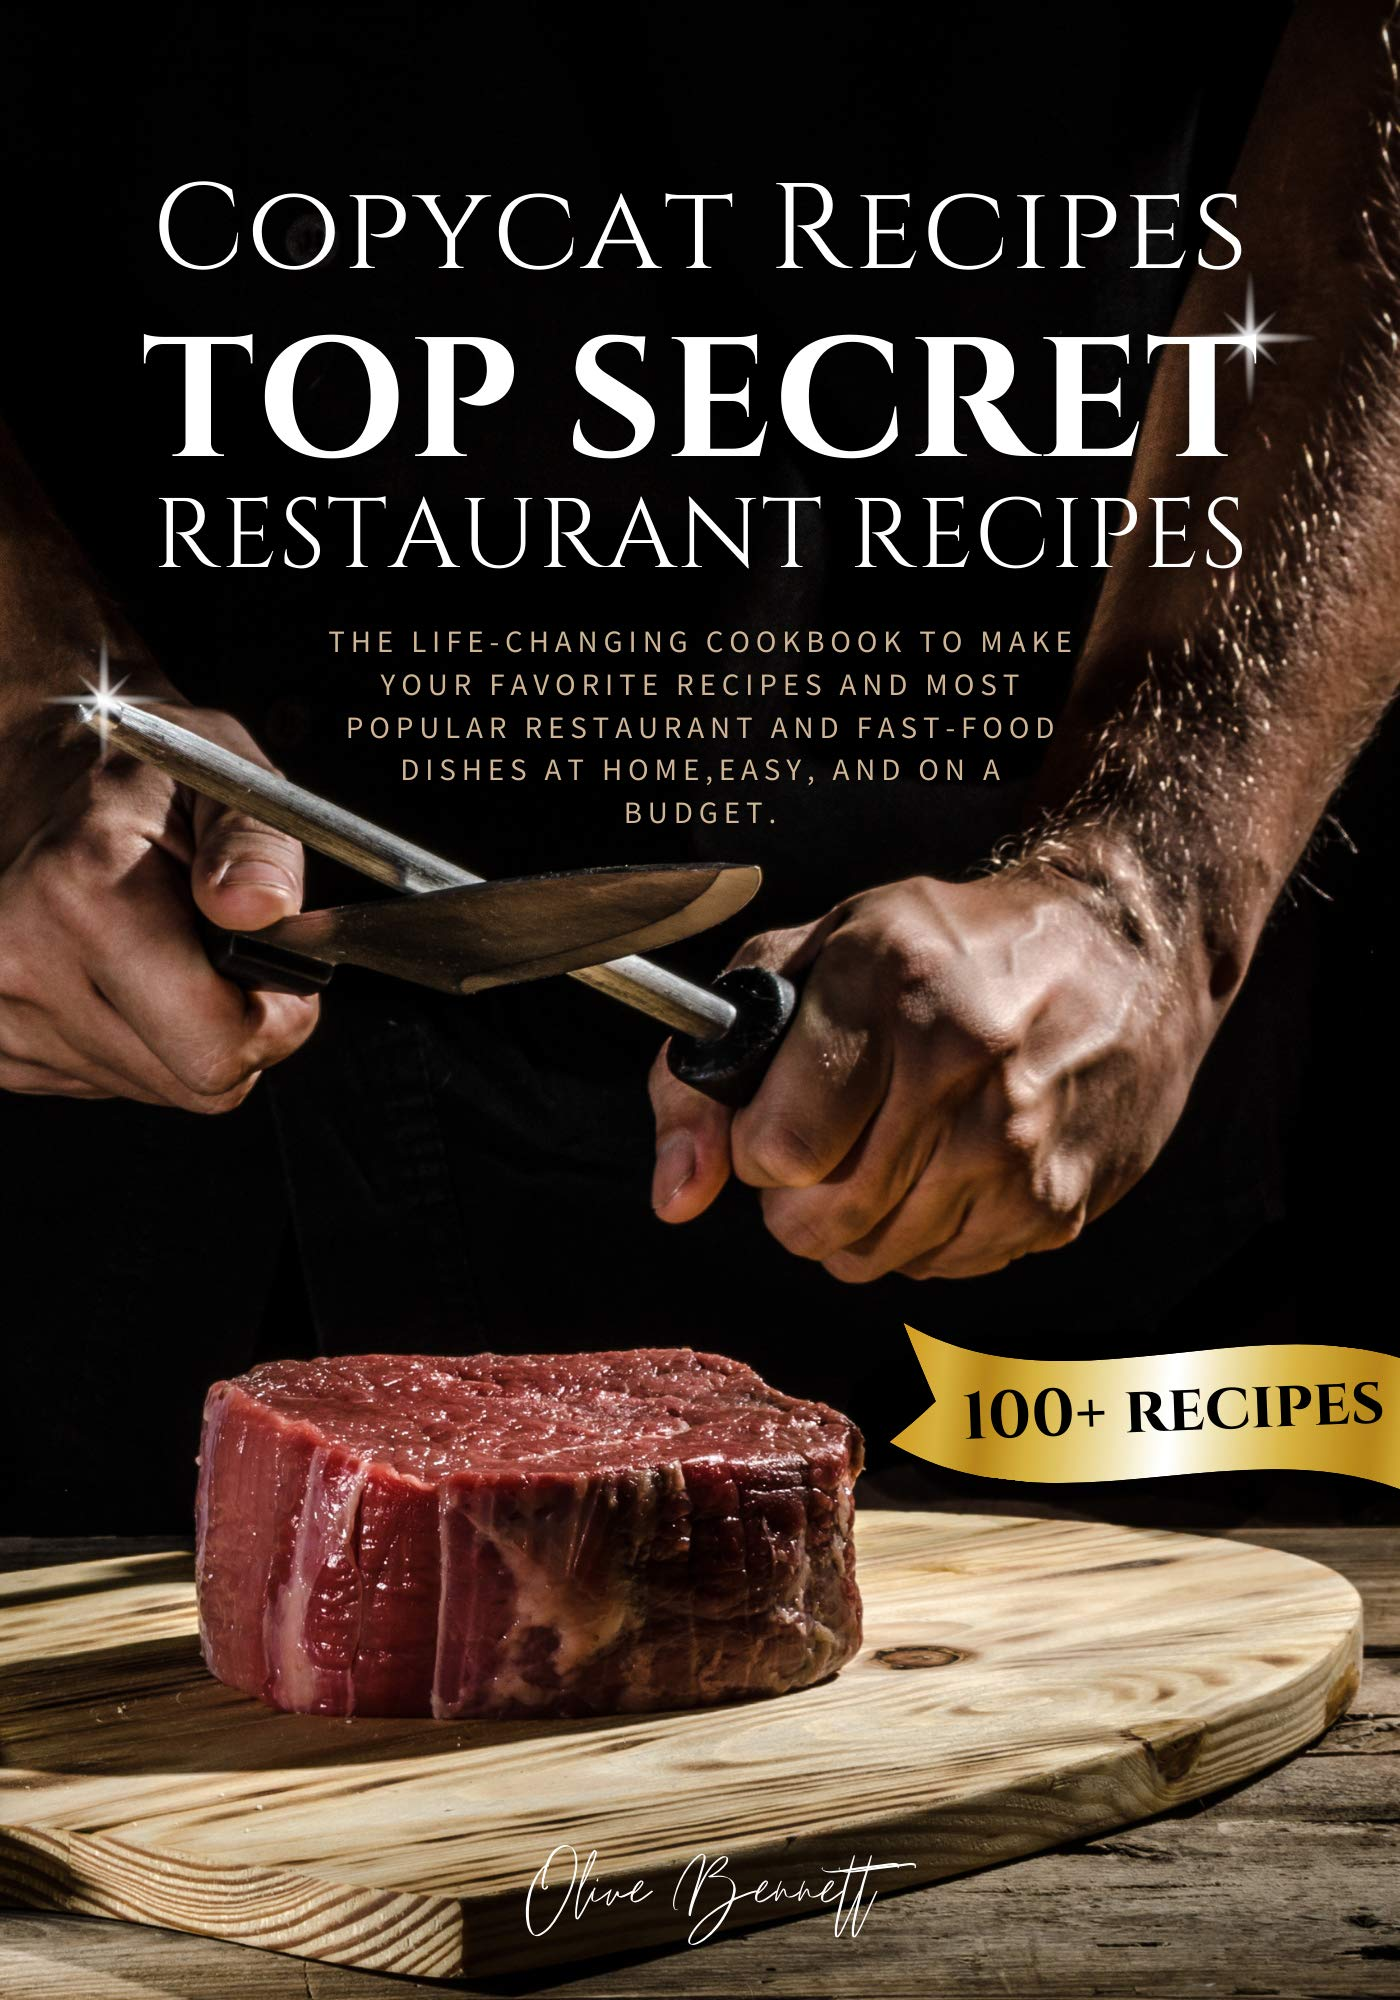 Copycat Recipes: Top Secret Restaurant Recipes. A Life-Changing Cookbook to Make Your Favorite Recipes, Most Popular Restaurant and Fast-Food Dishes at Home, Easy, and on a Budget.